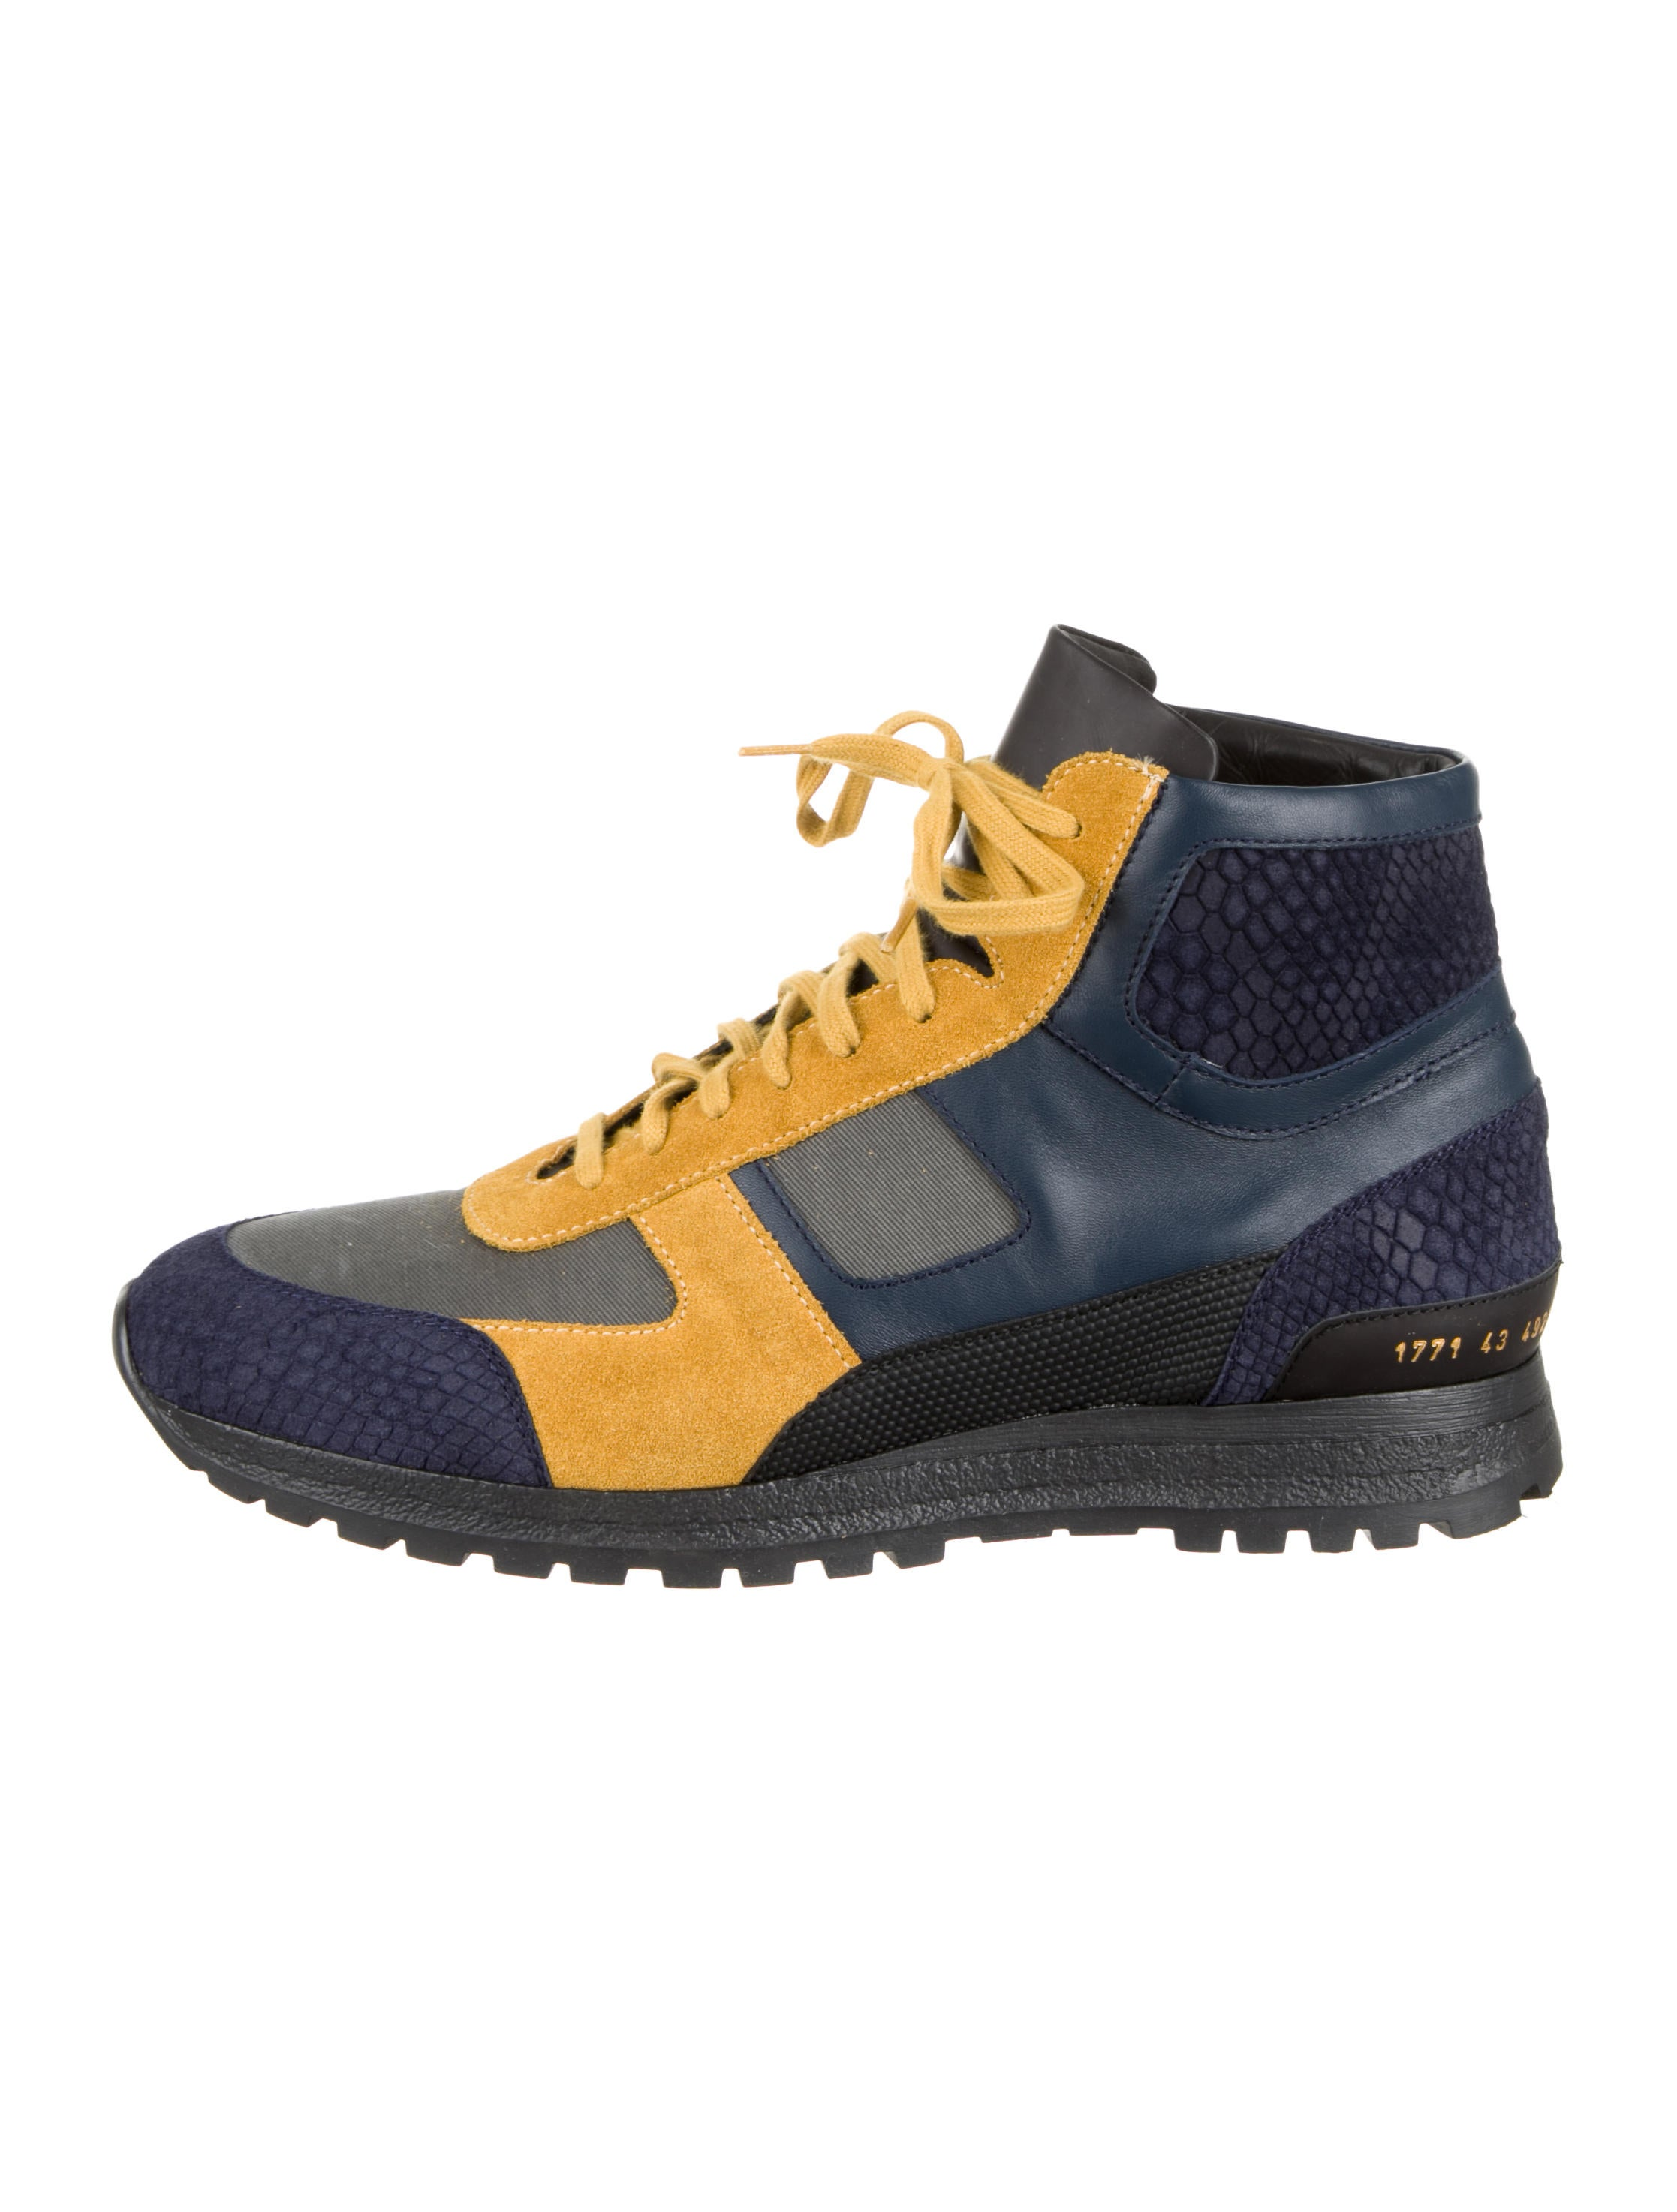 fff39a47e336f7 Robert Geller x Common Projects Treck High-Top Sneakers - Shoes ...